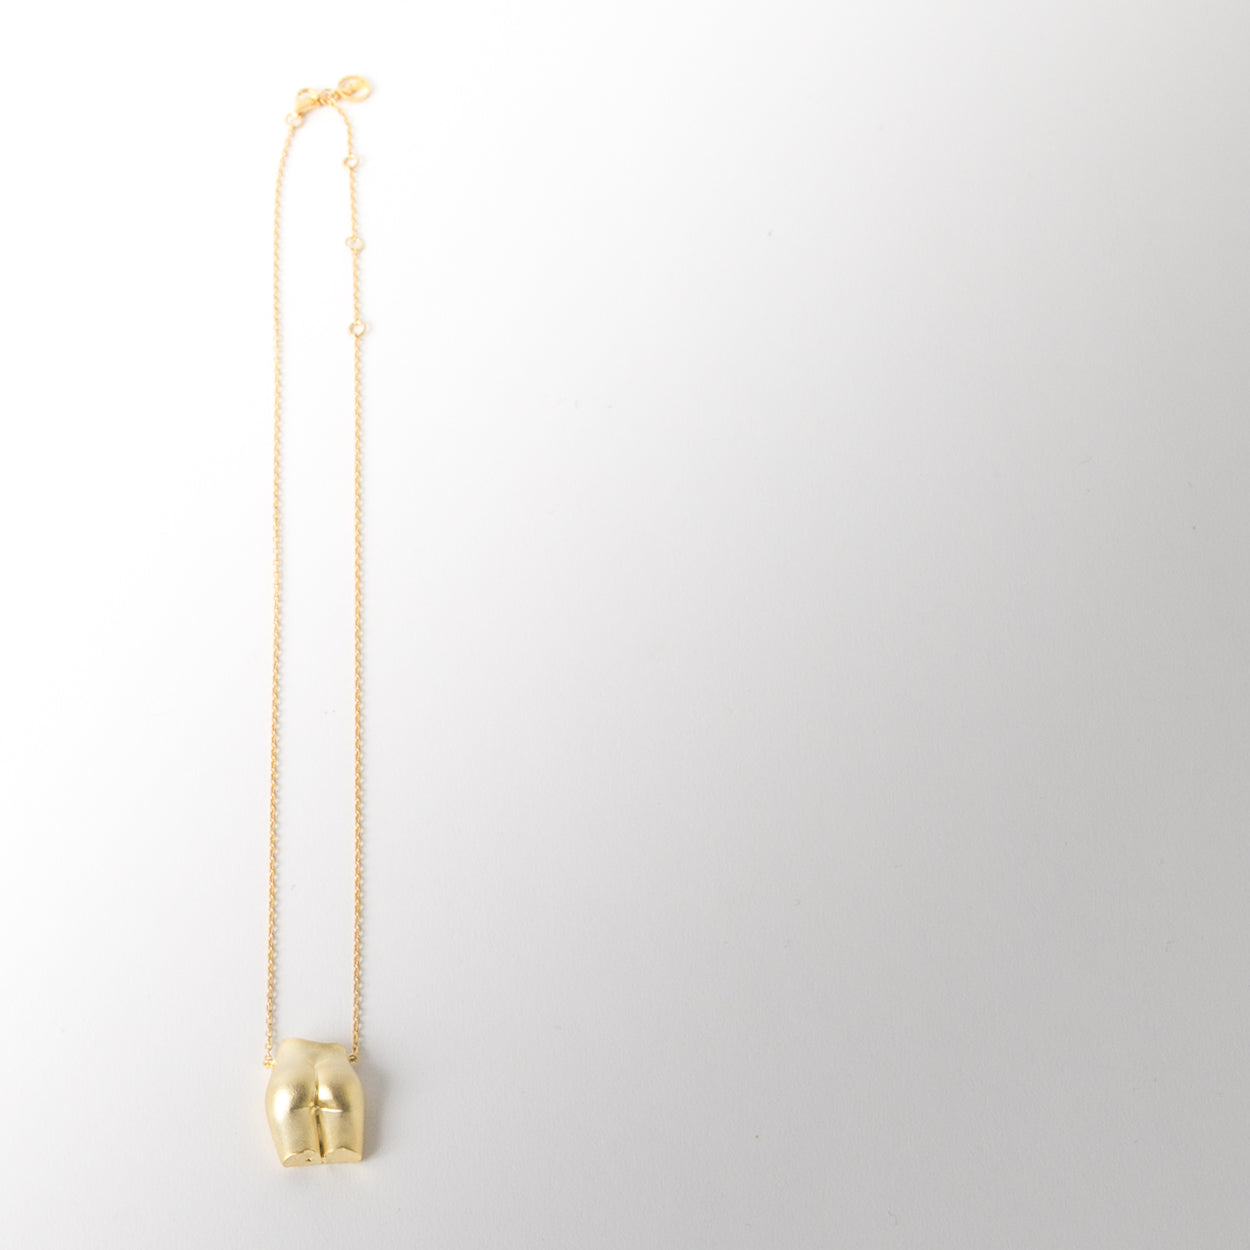 Le Derriere Necklace, brushed